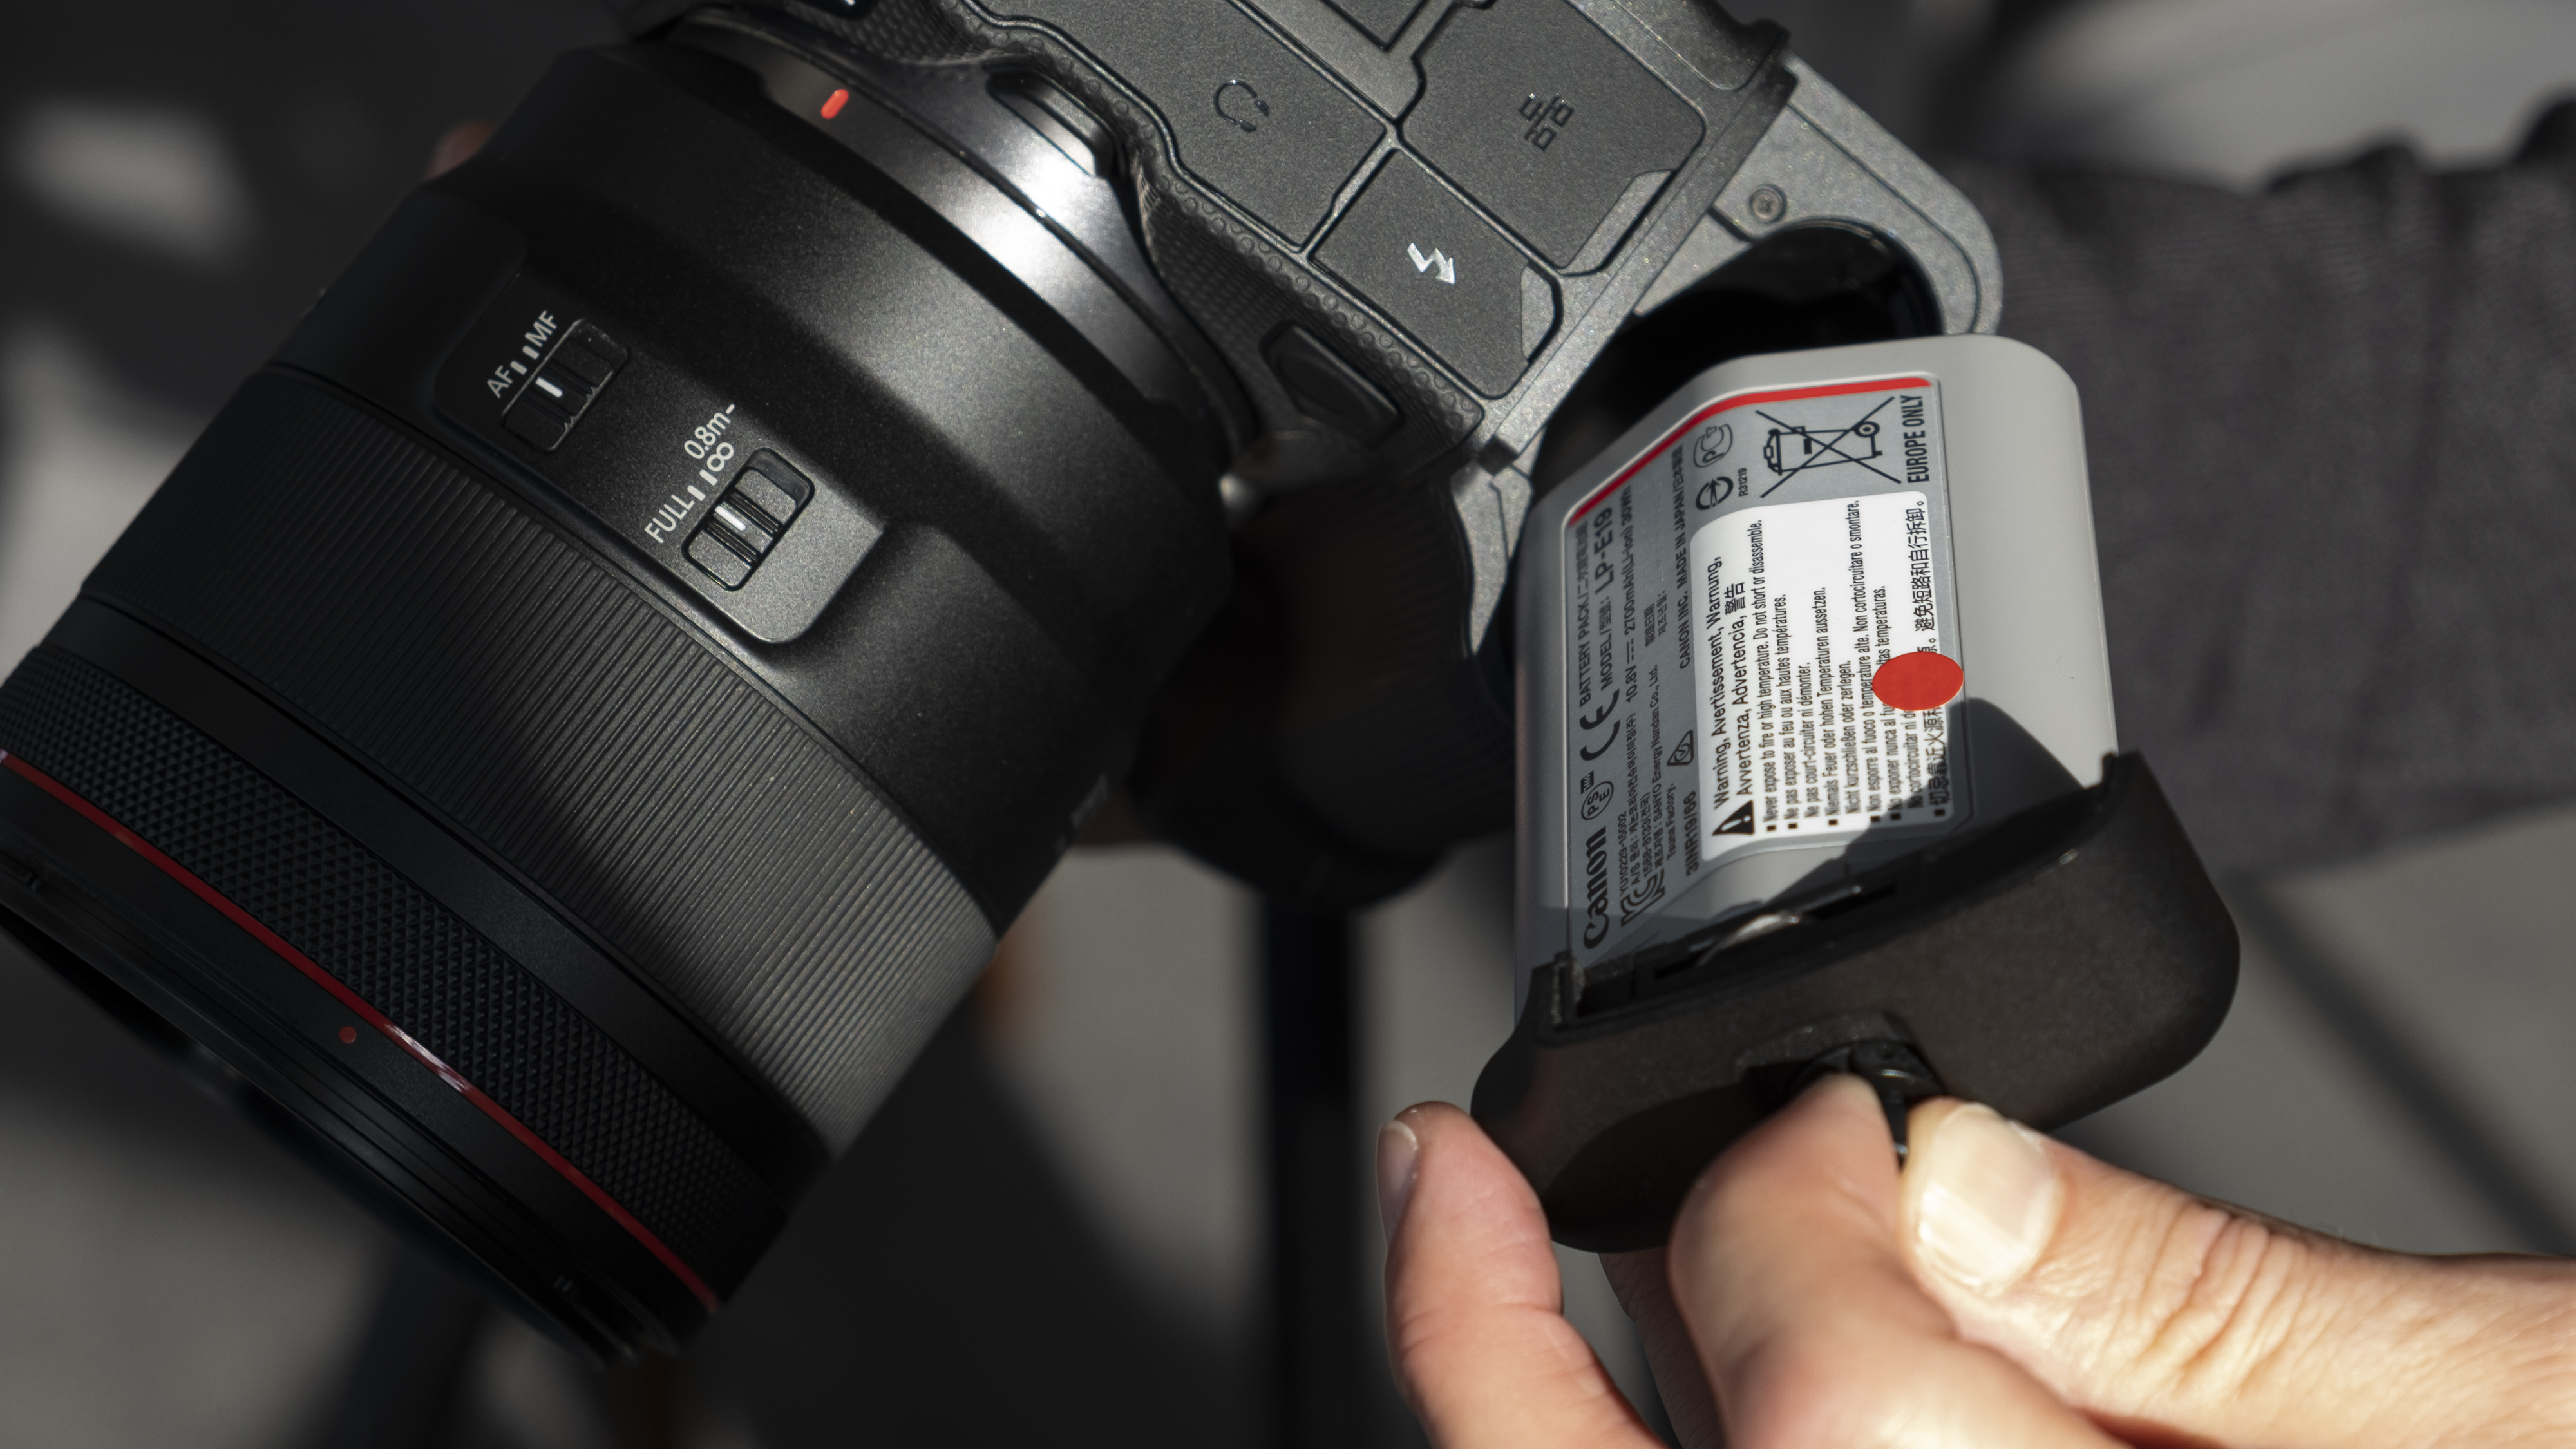 The battery of the Canon EOS R3 mirrorless camera